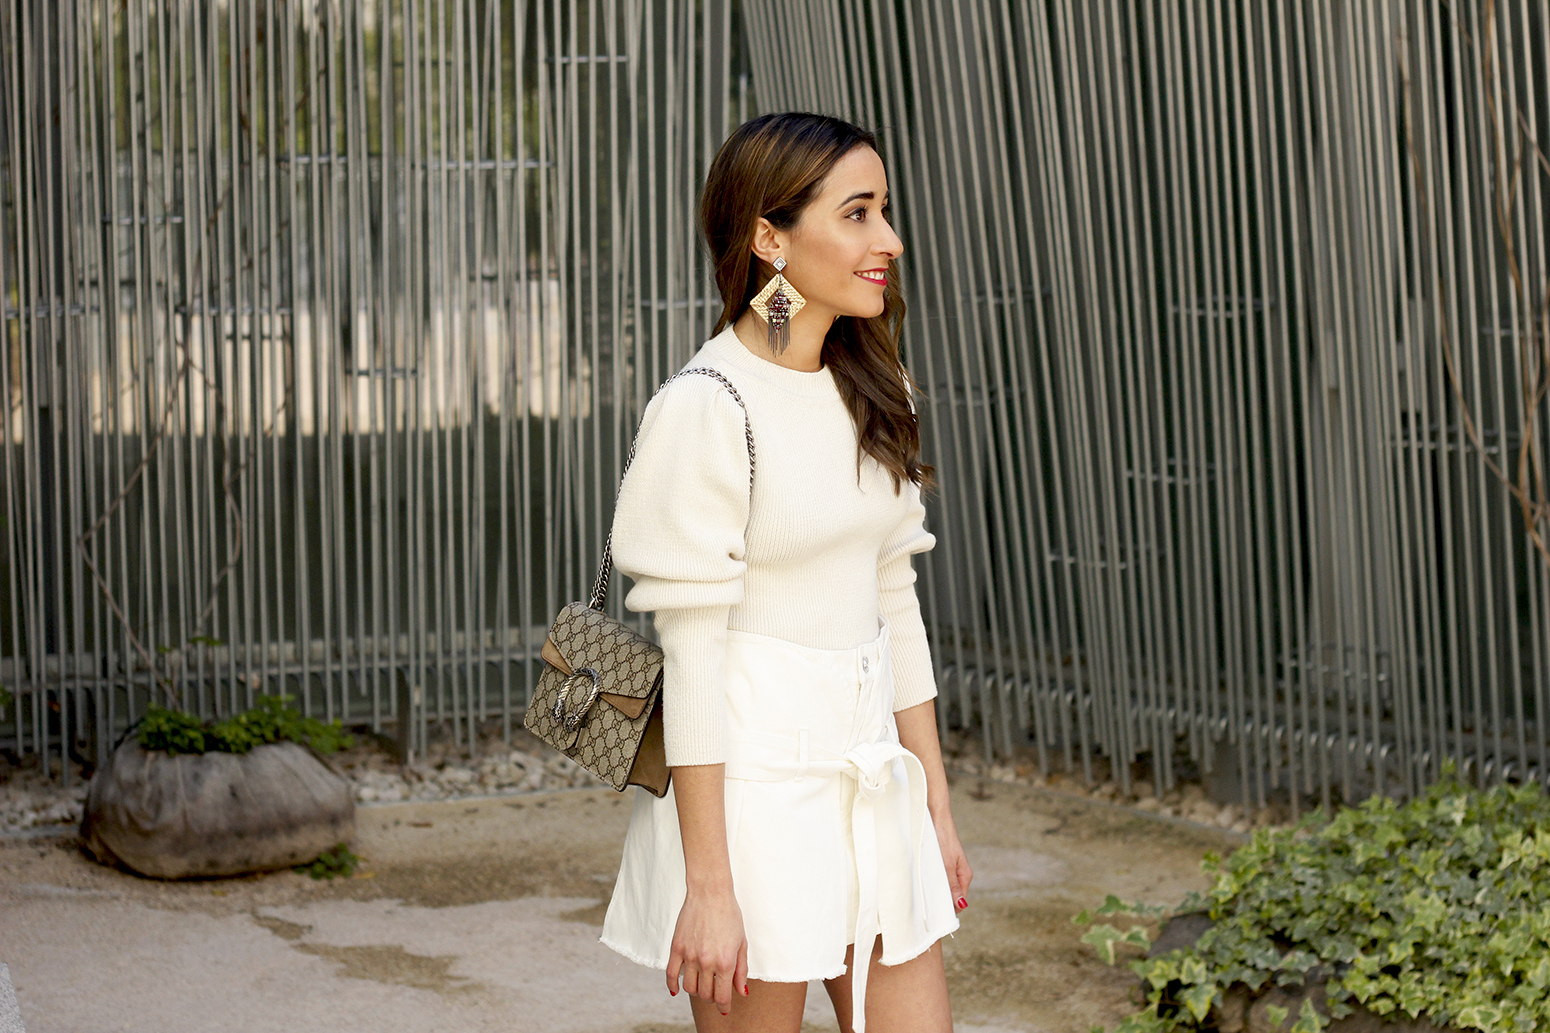 White skirt white sweater blue light mules uterqüe gucci bag céline sunnies spring outfit style outfit10